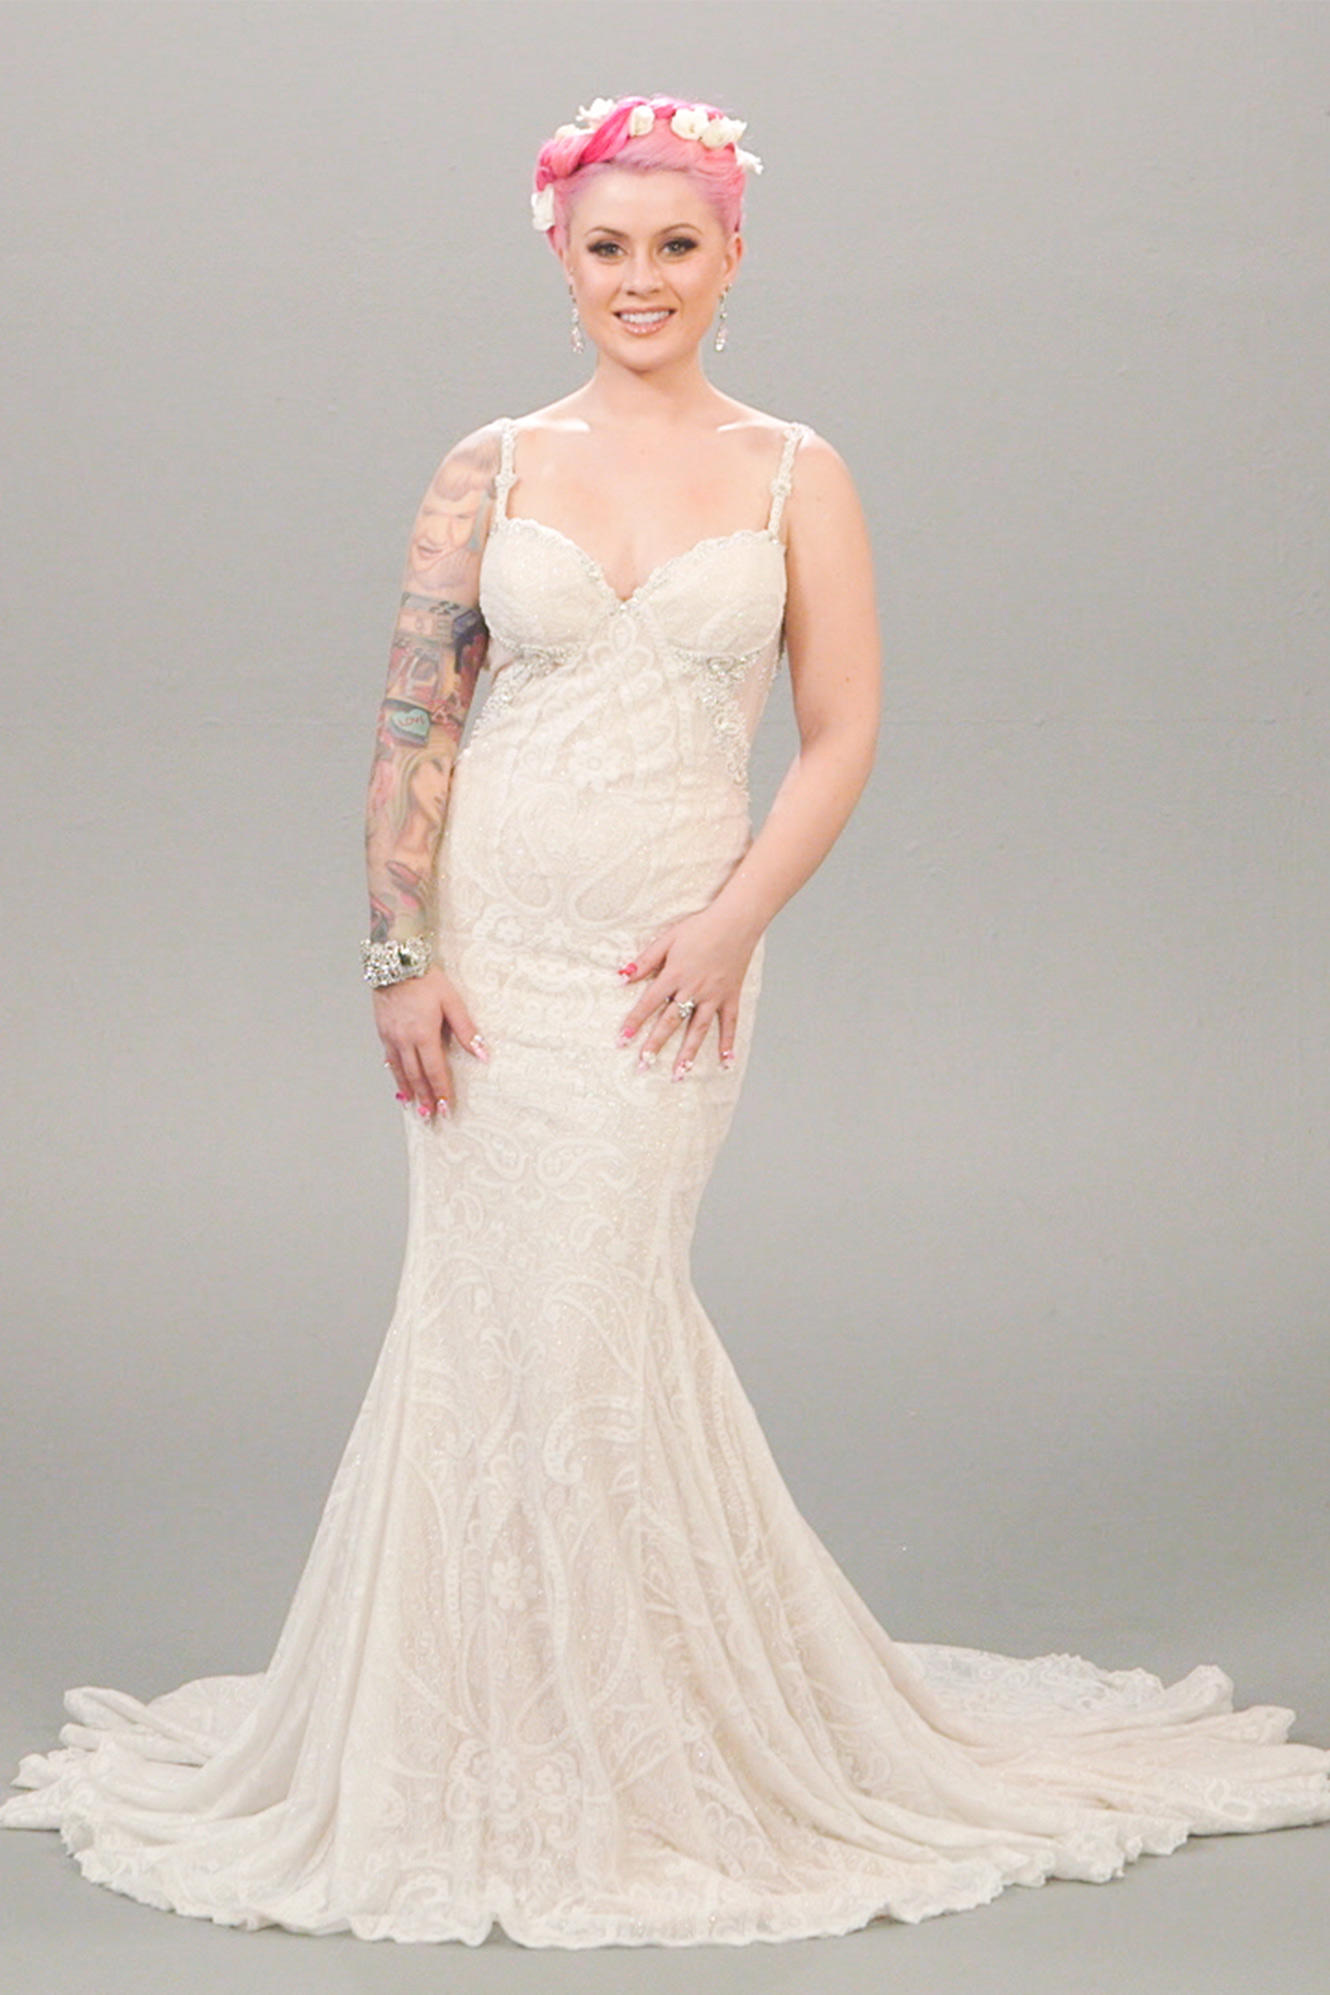 Before and After Looks: Brides Gone Styled Season 1 | Brides Gone ...